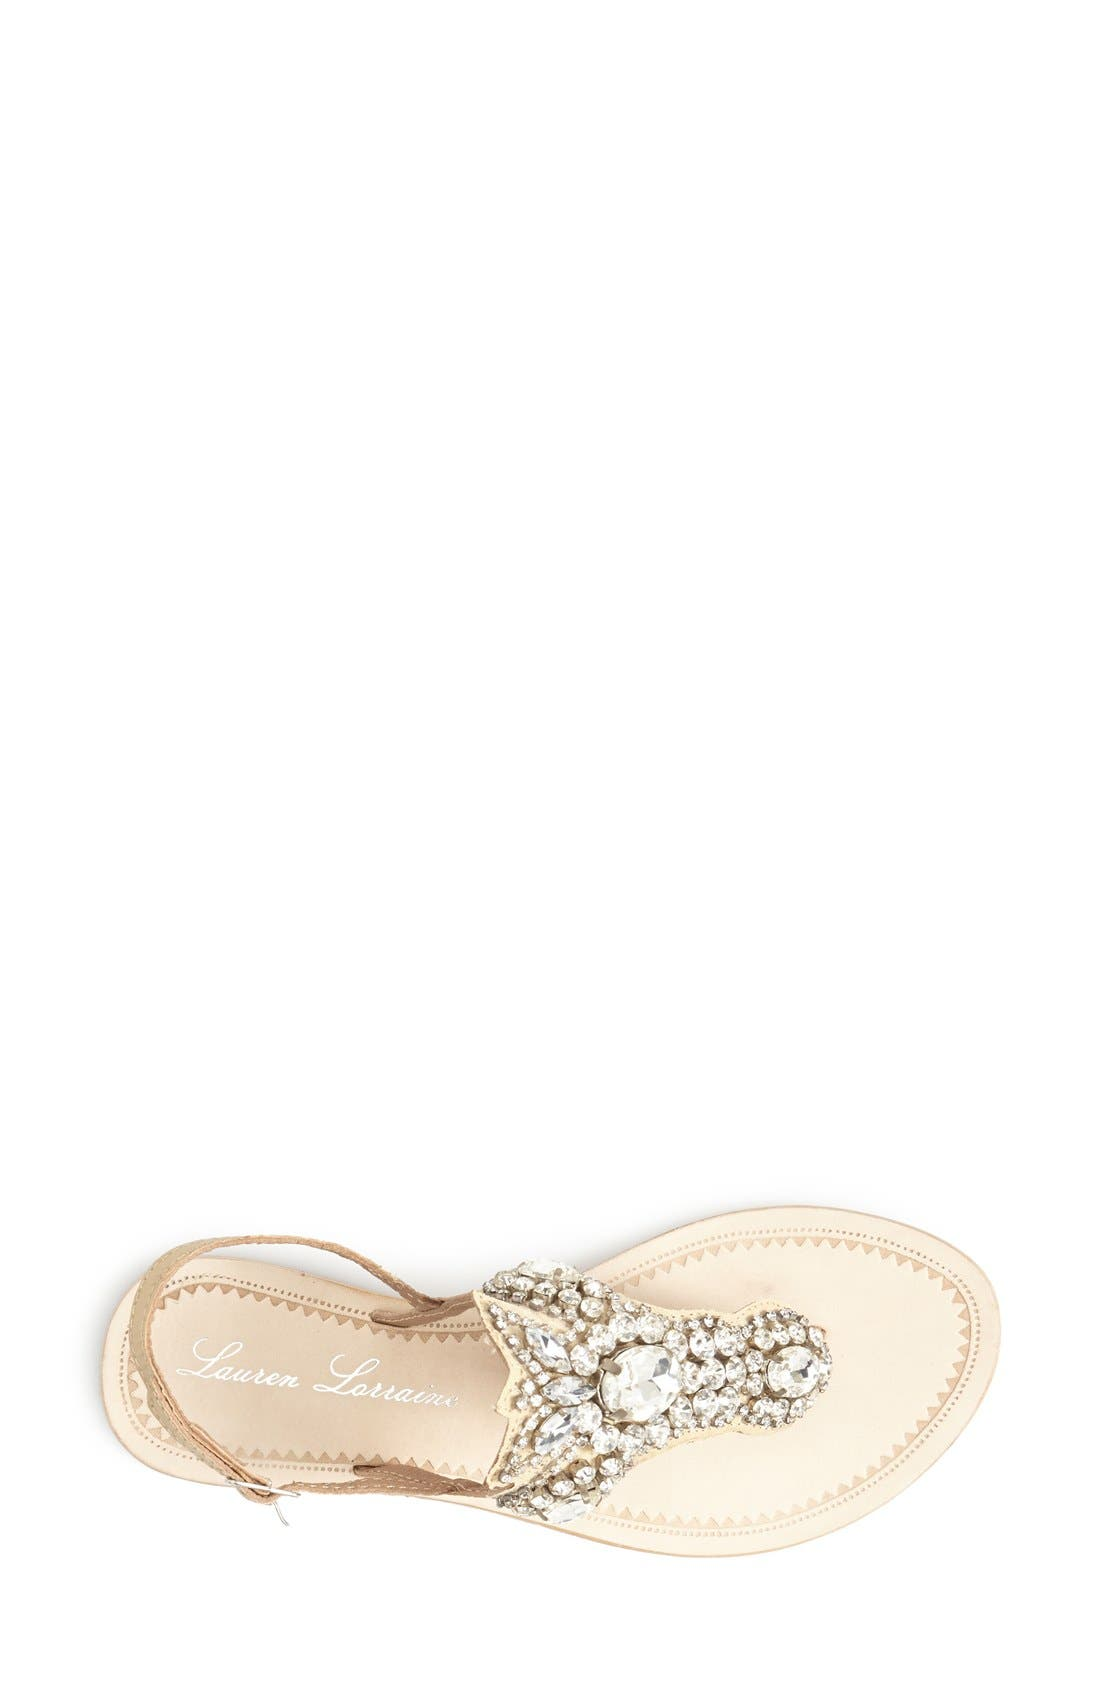 Alternate Image 3  - Lauren Lorraine 'Ibiza' Crystal Thong Sandal (Women)